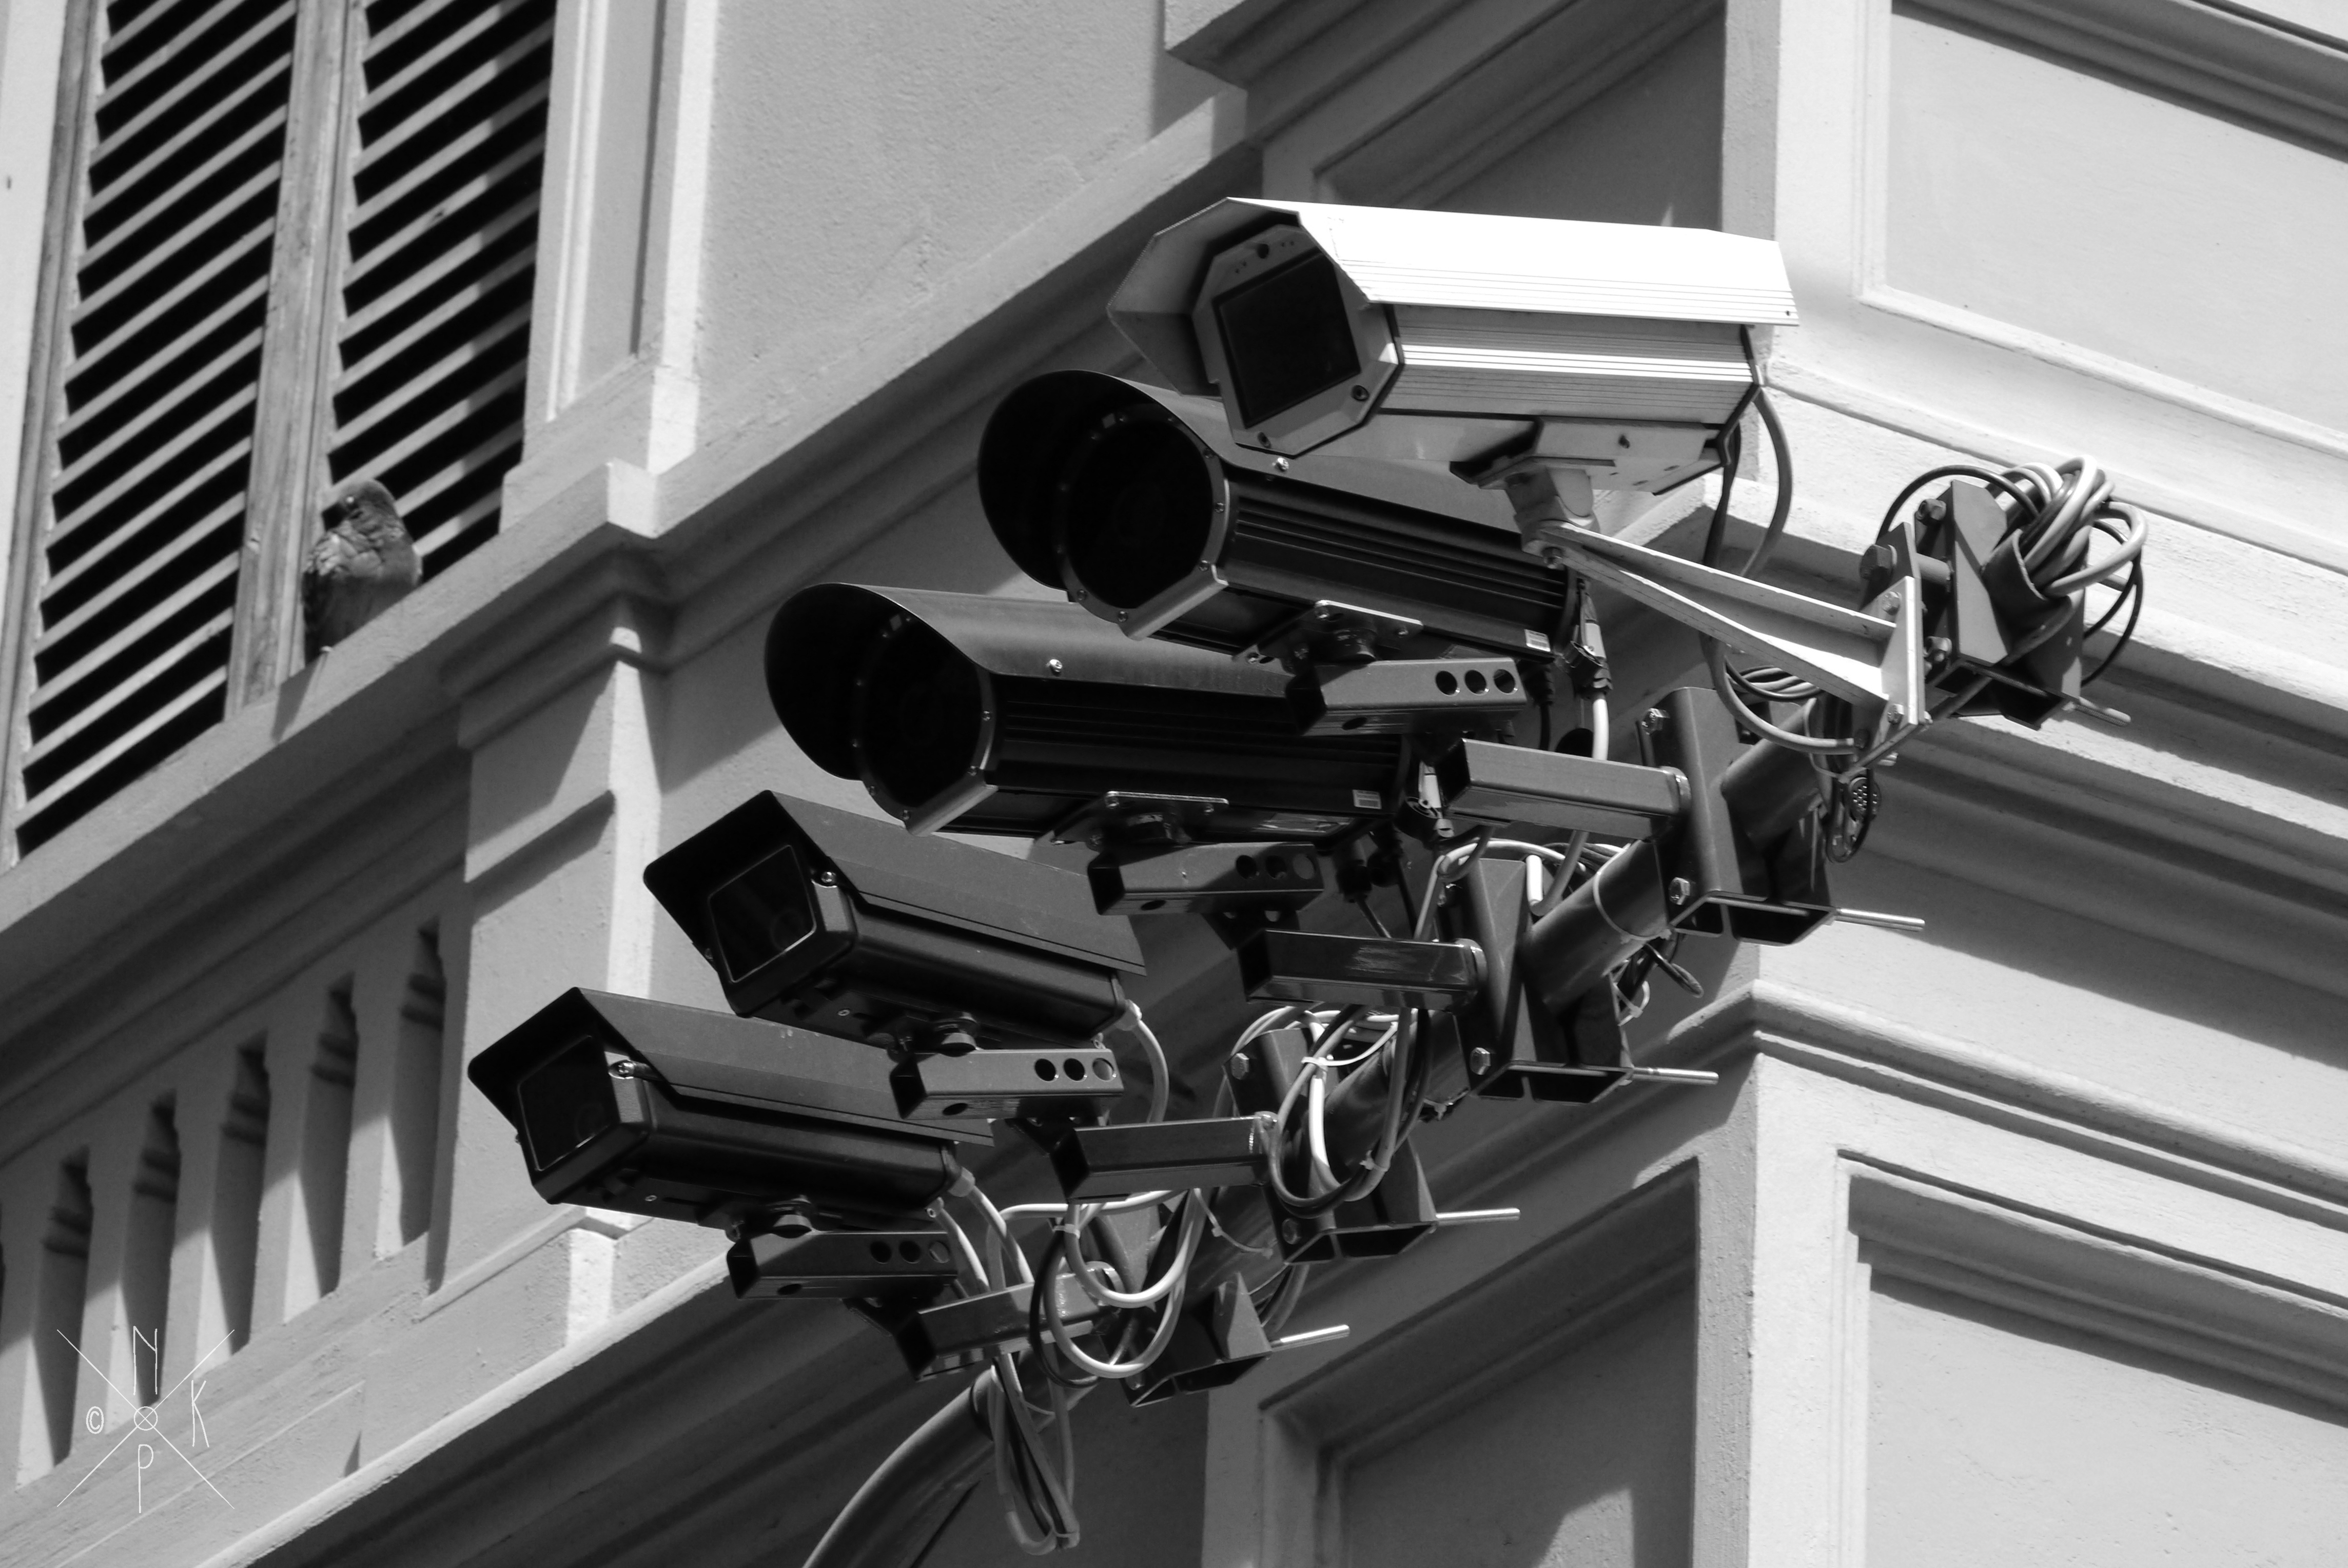 High-Tech Surveillance Amplifies Police Bias and Overreach